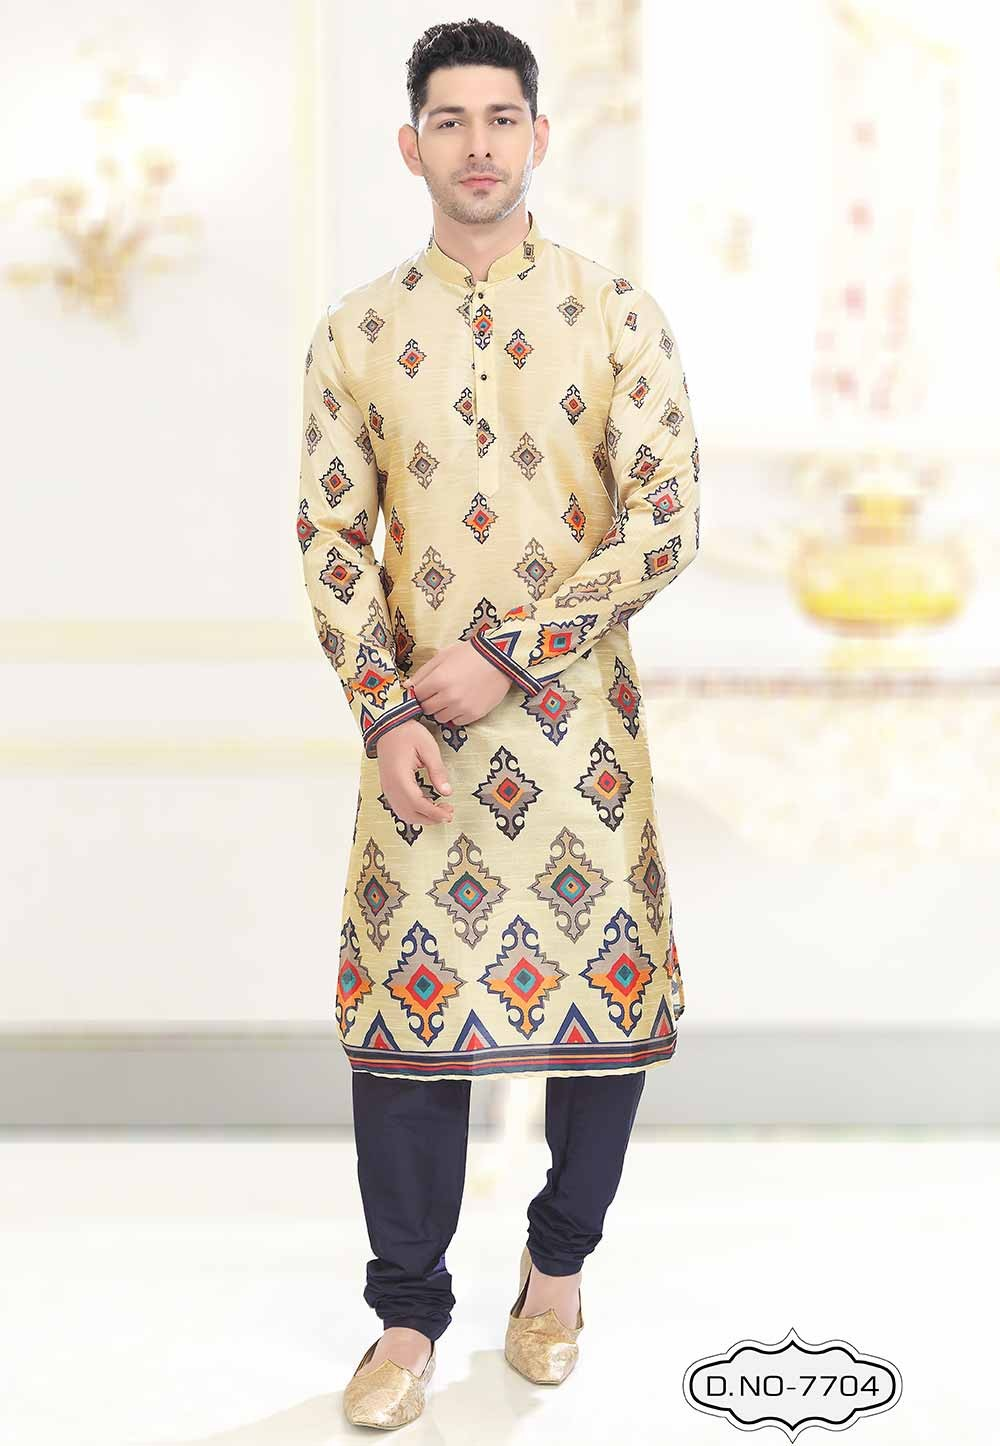 Beige Colour Traditional Indian kurta pajama for mens